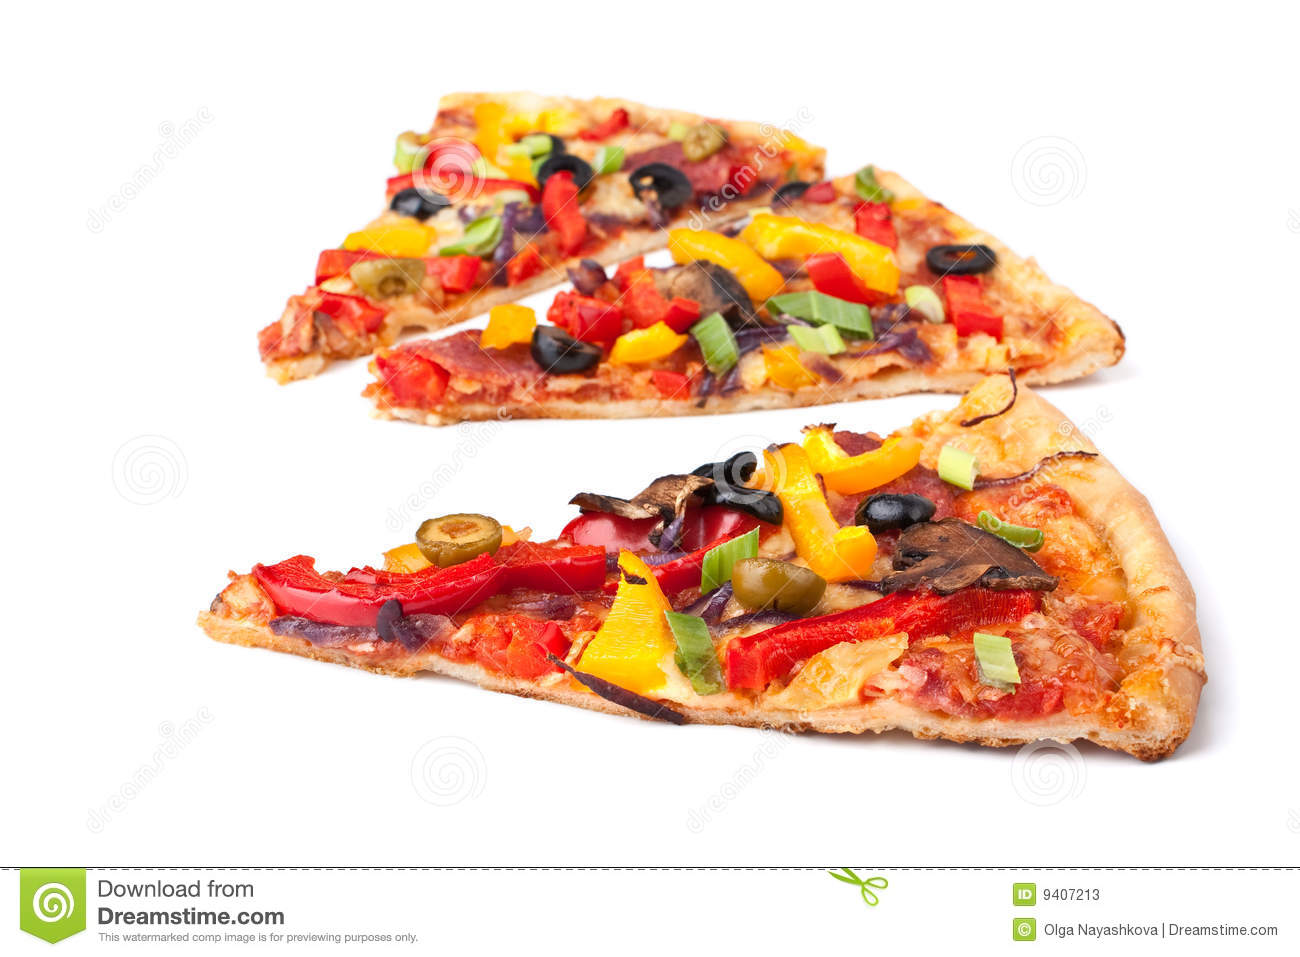 Slices of vegetable pizza